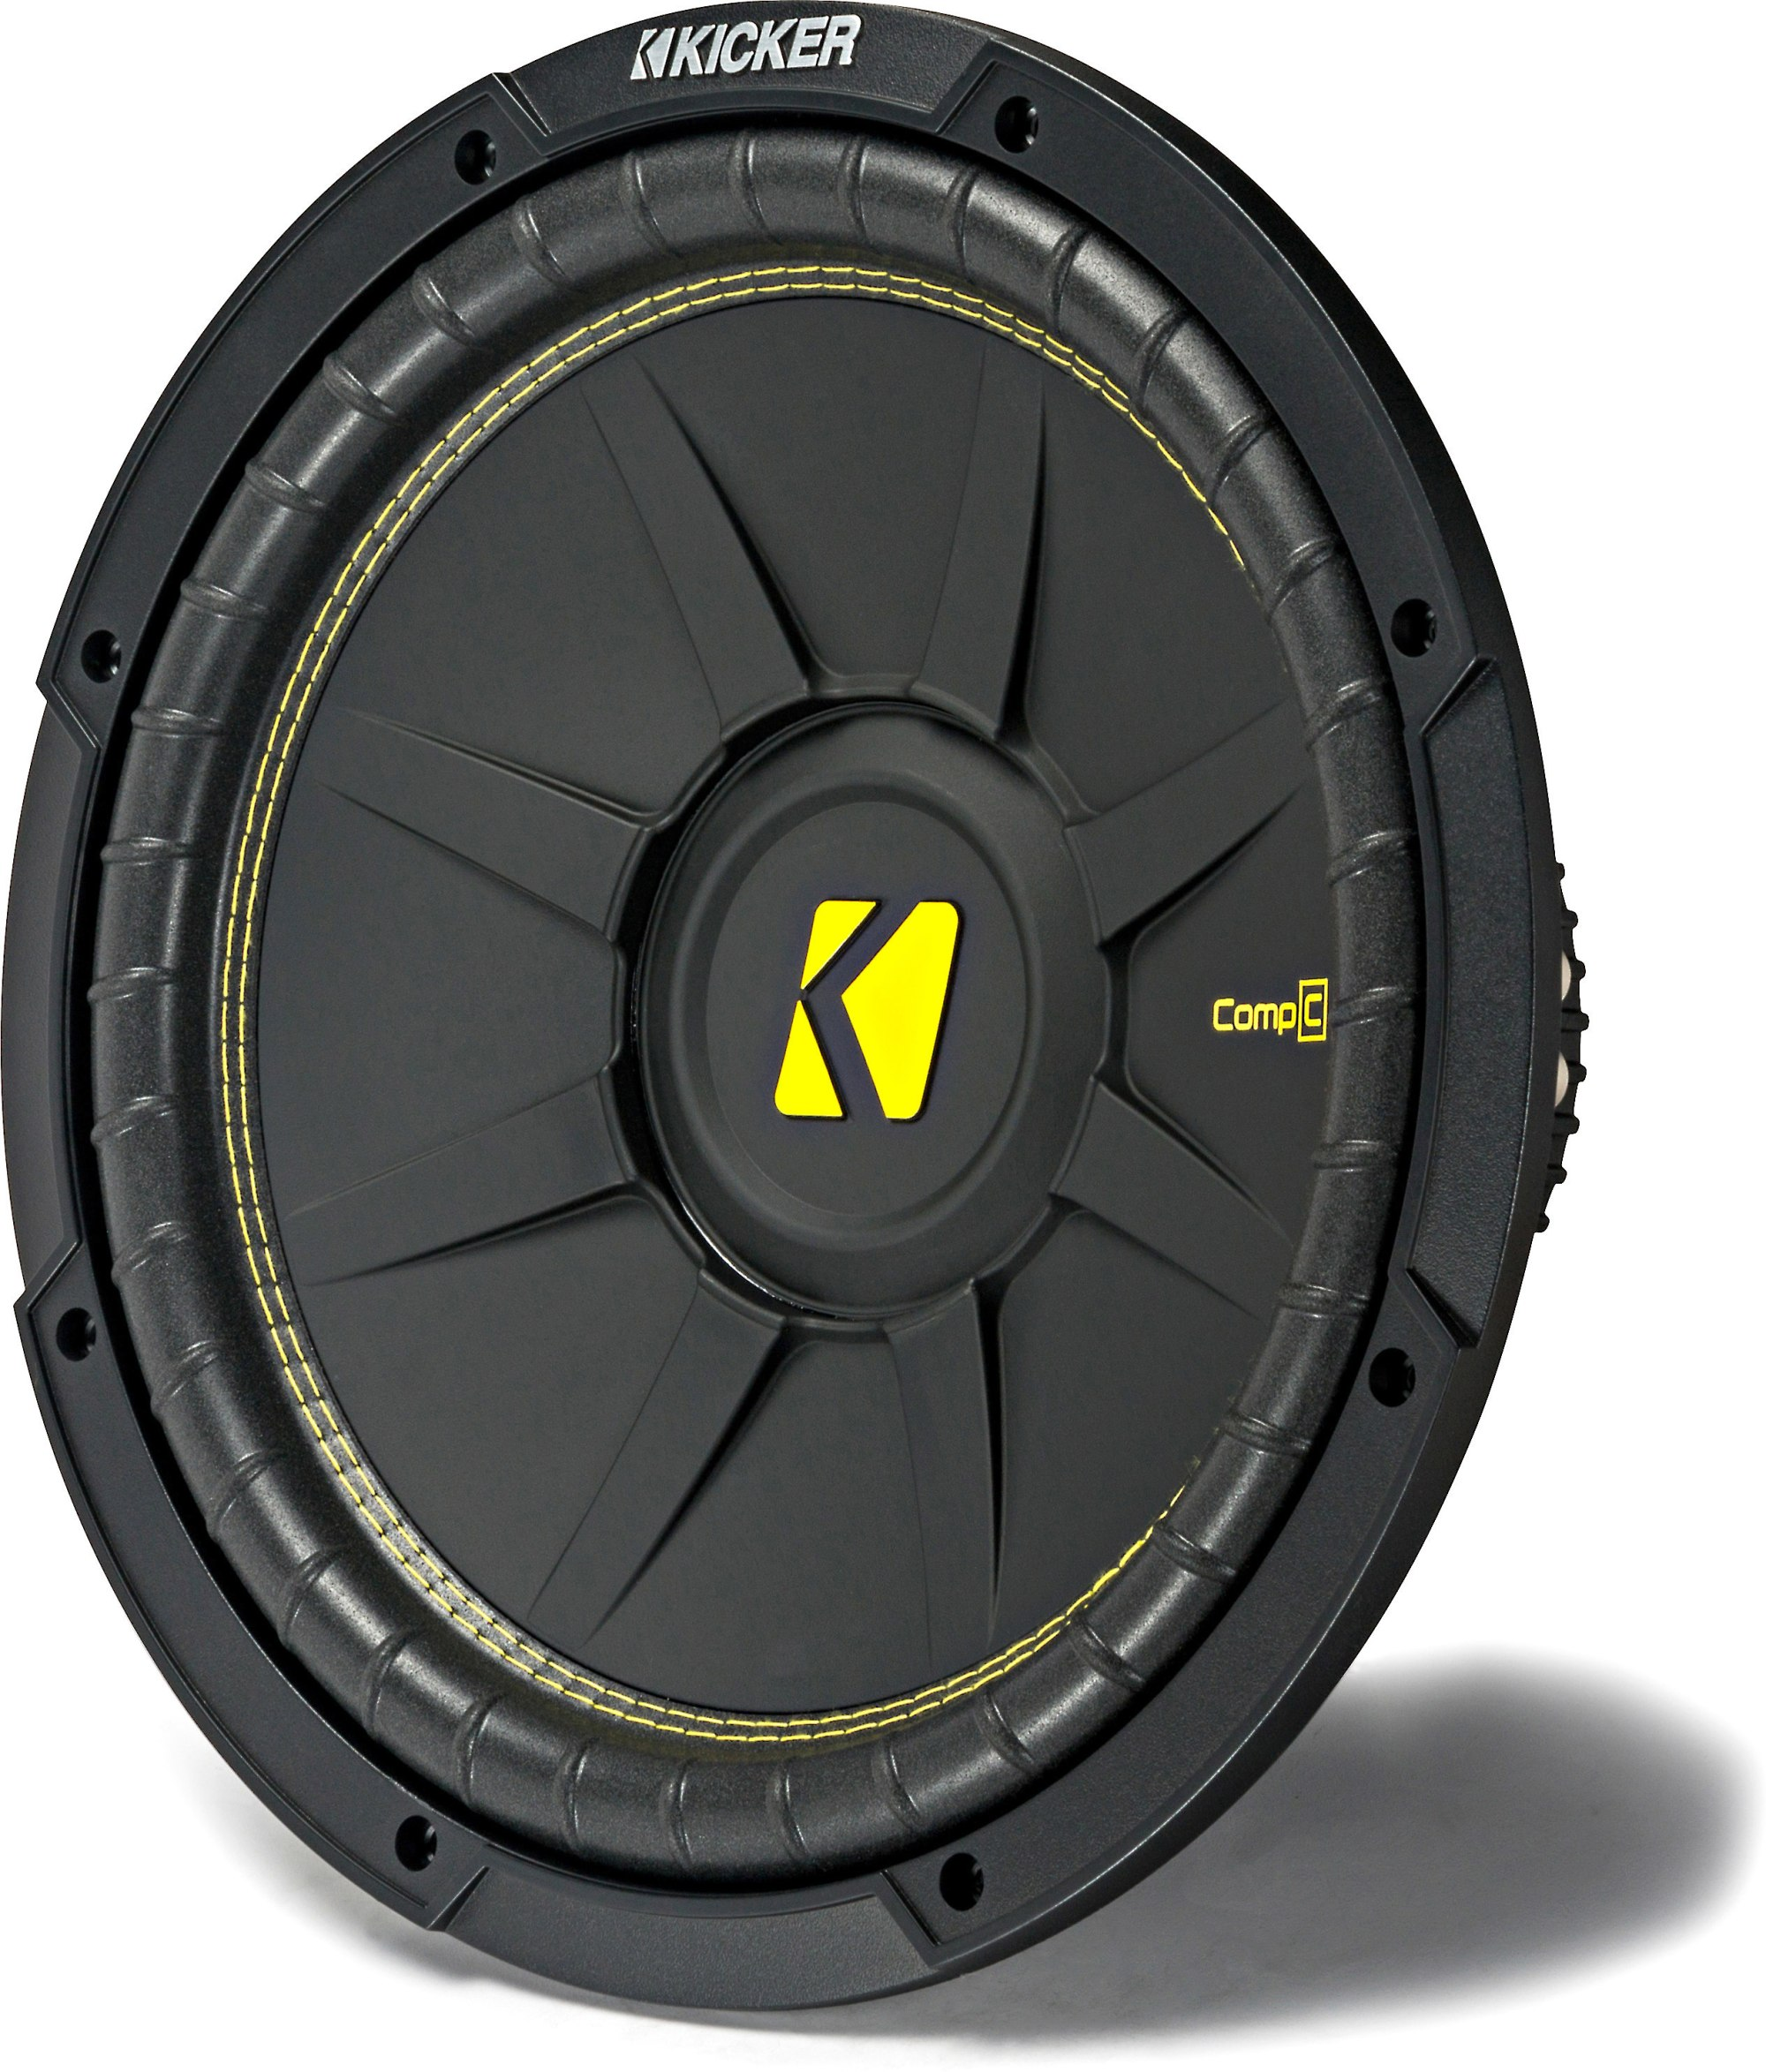 hight resolution of kicker 44cwcd124 compc series 12 subwoofer with dual 4 ohm voice coils at crutchfield